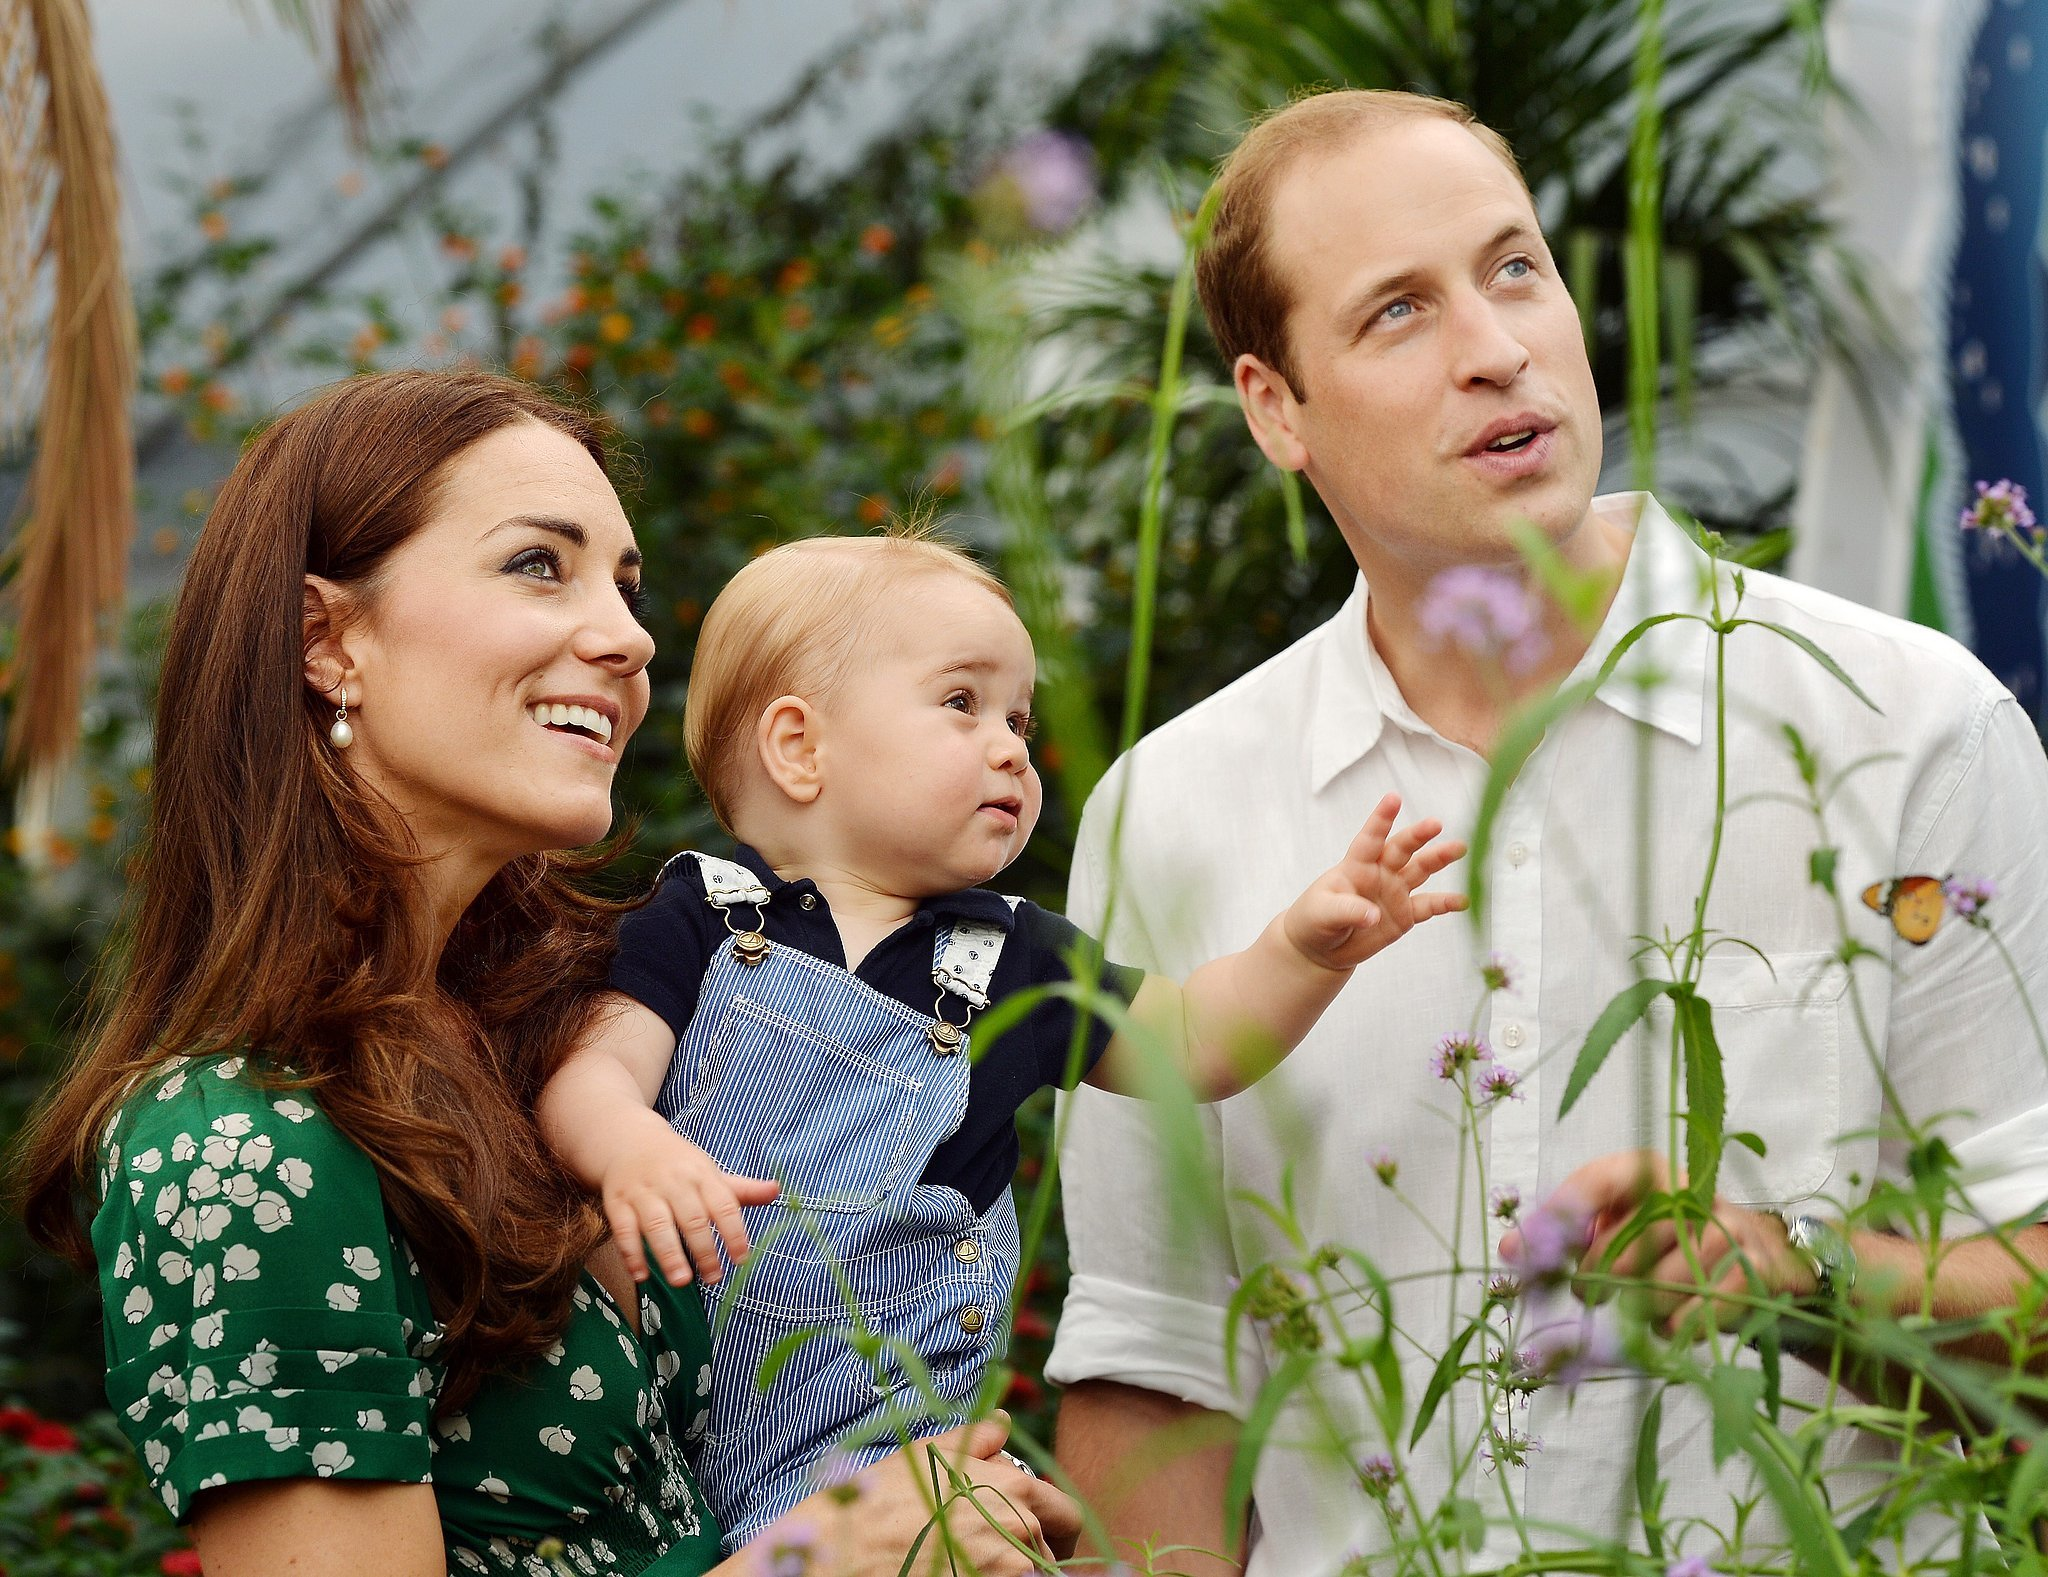 Prince William and Kate Middleton posed with Prince George in 2014.